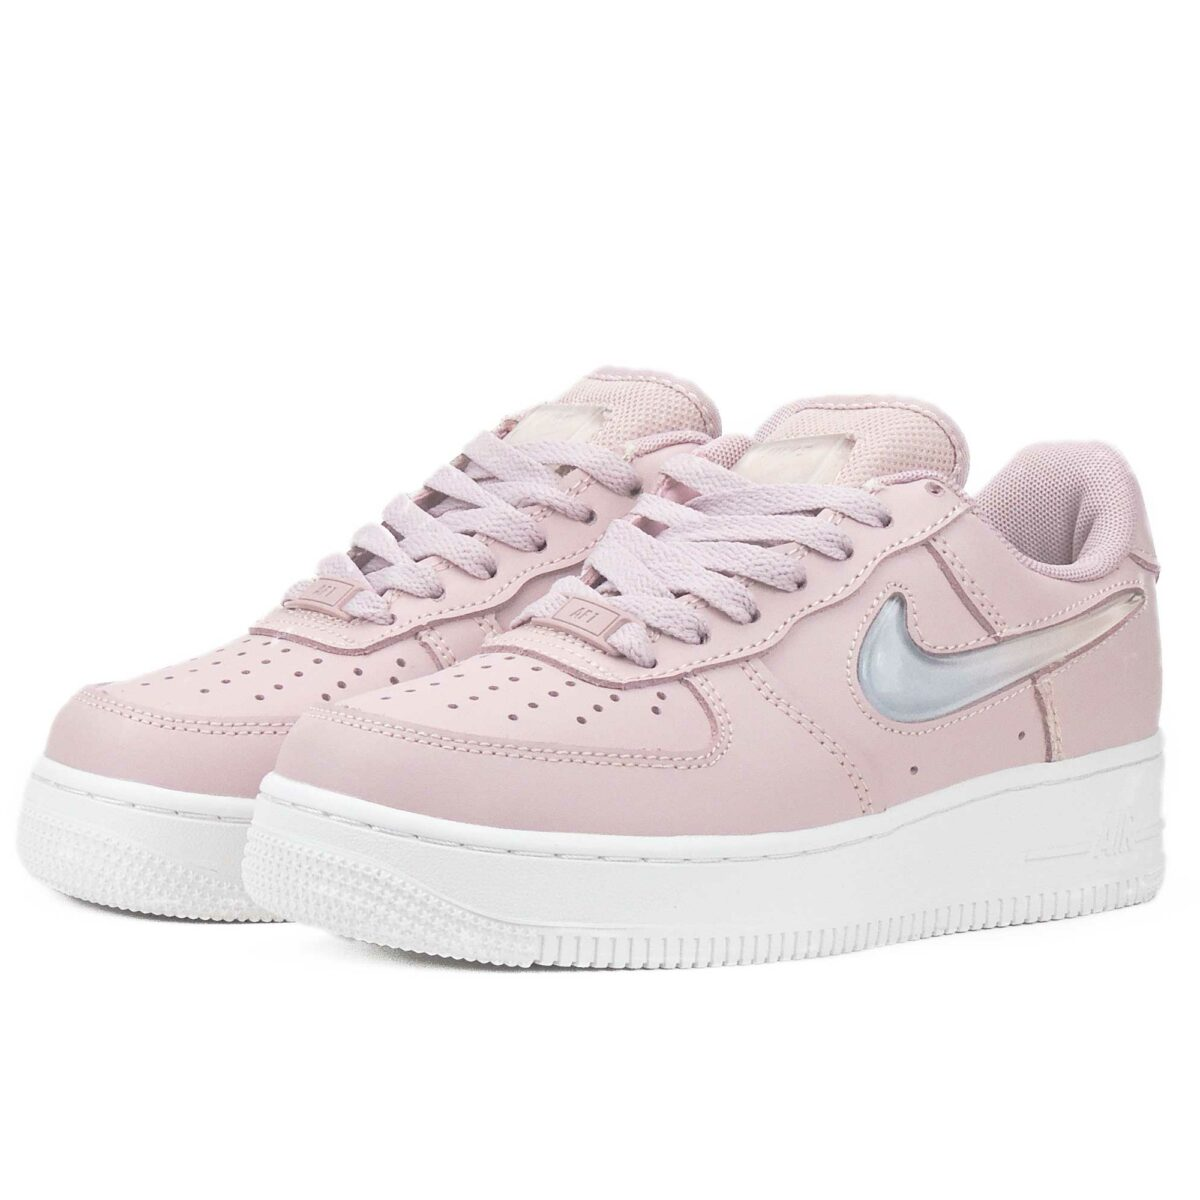 nike air force 1 '07 se prm AH6827_101 купить